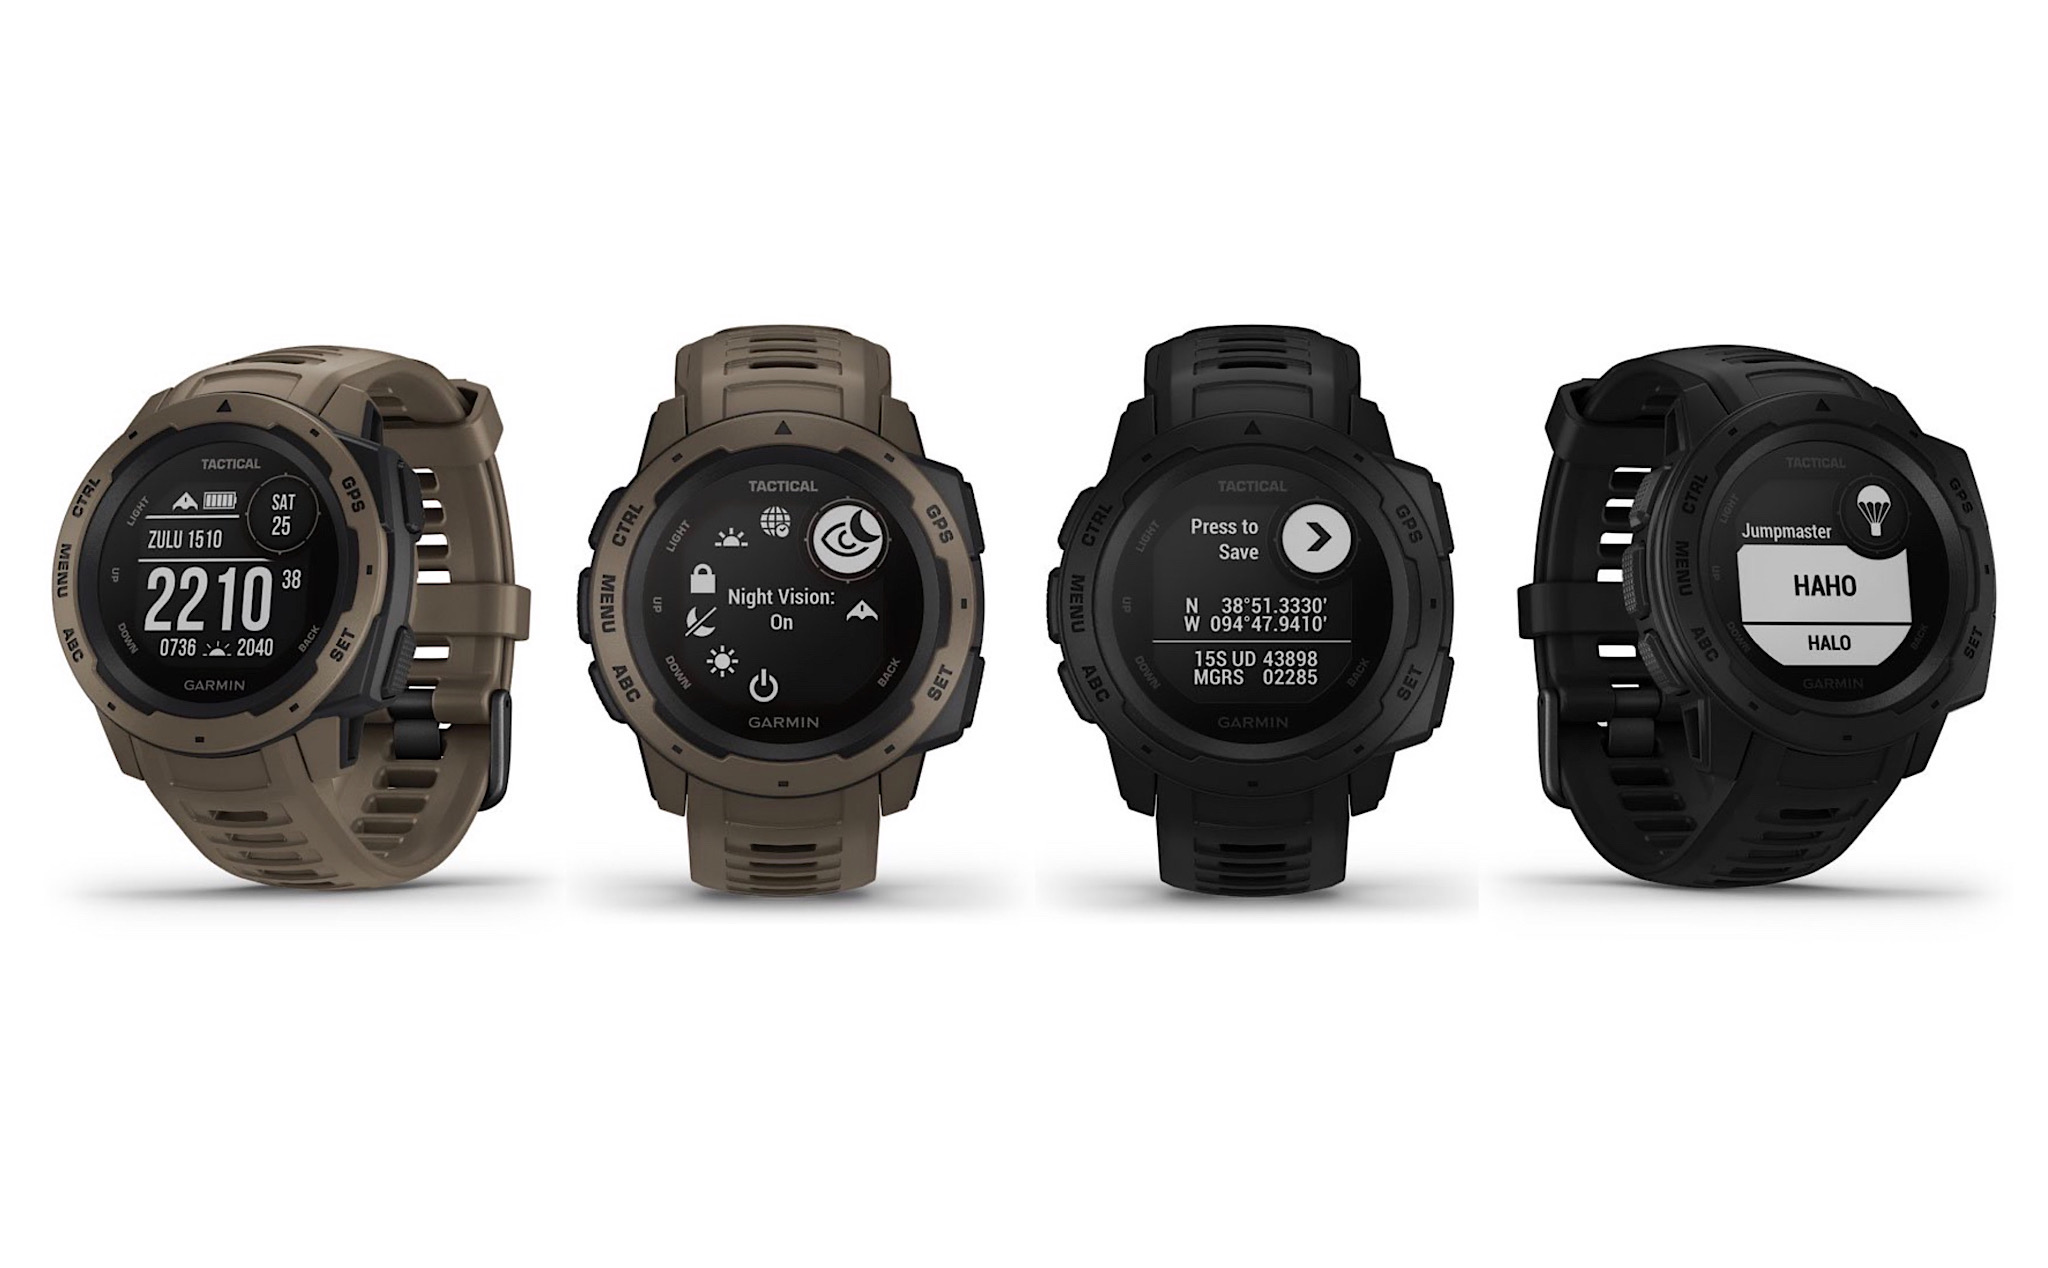 Garmin Instinct has additional Tactical versions, colors and new features full of military features